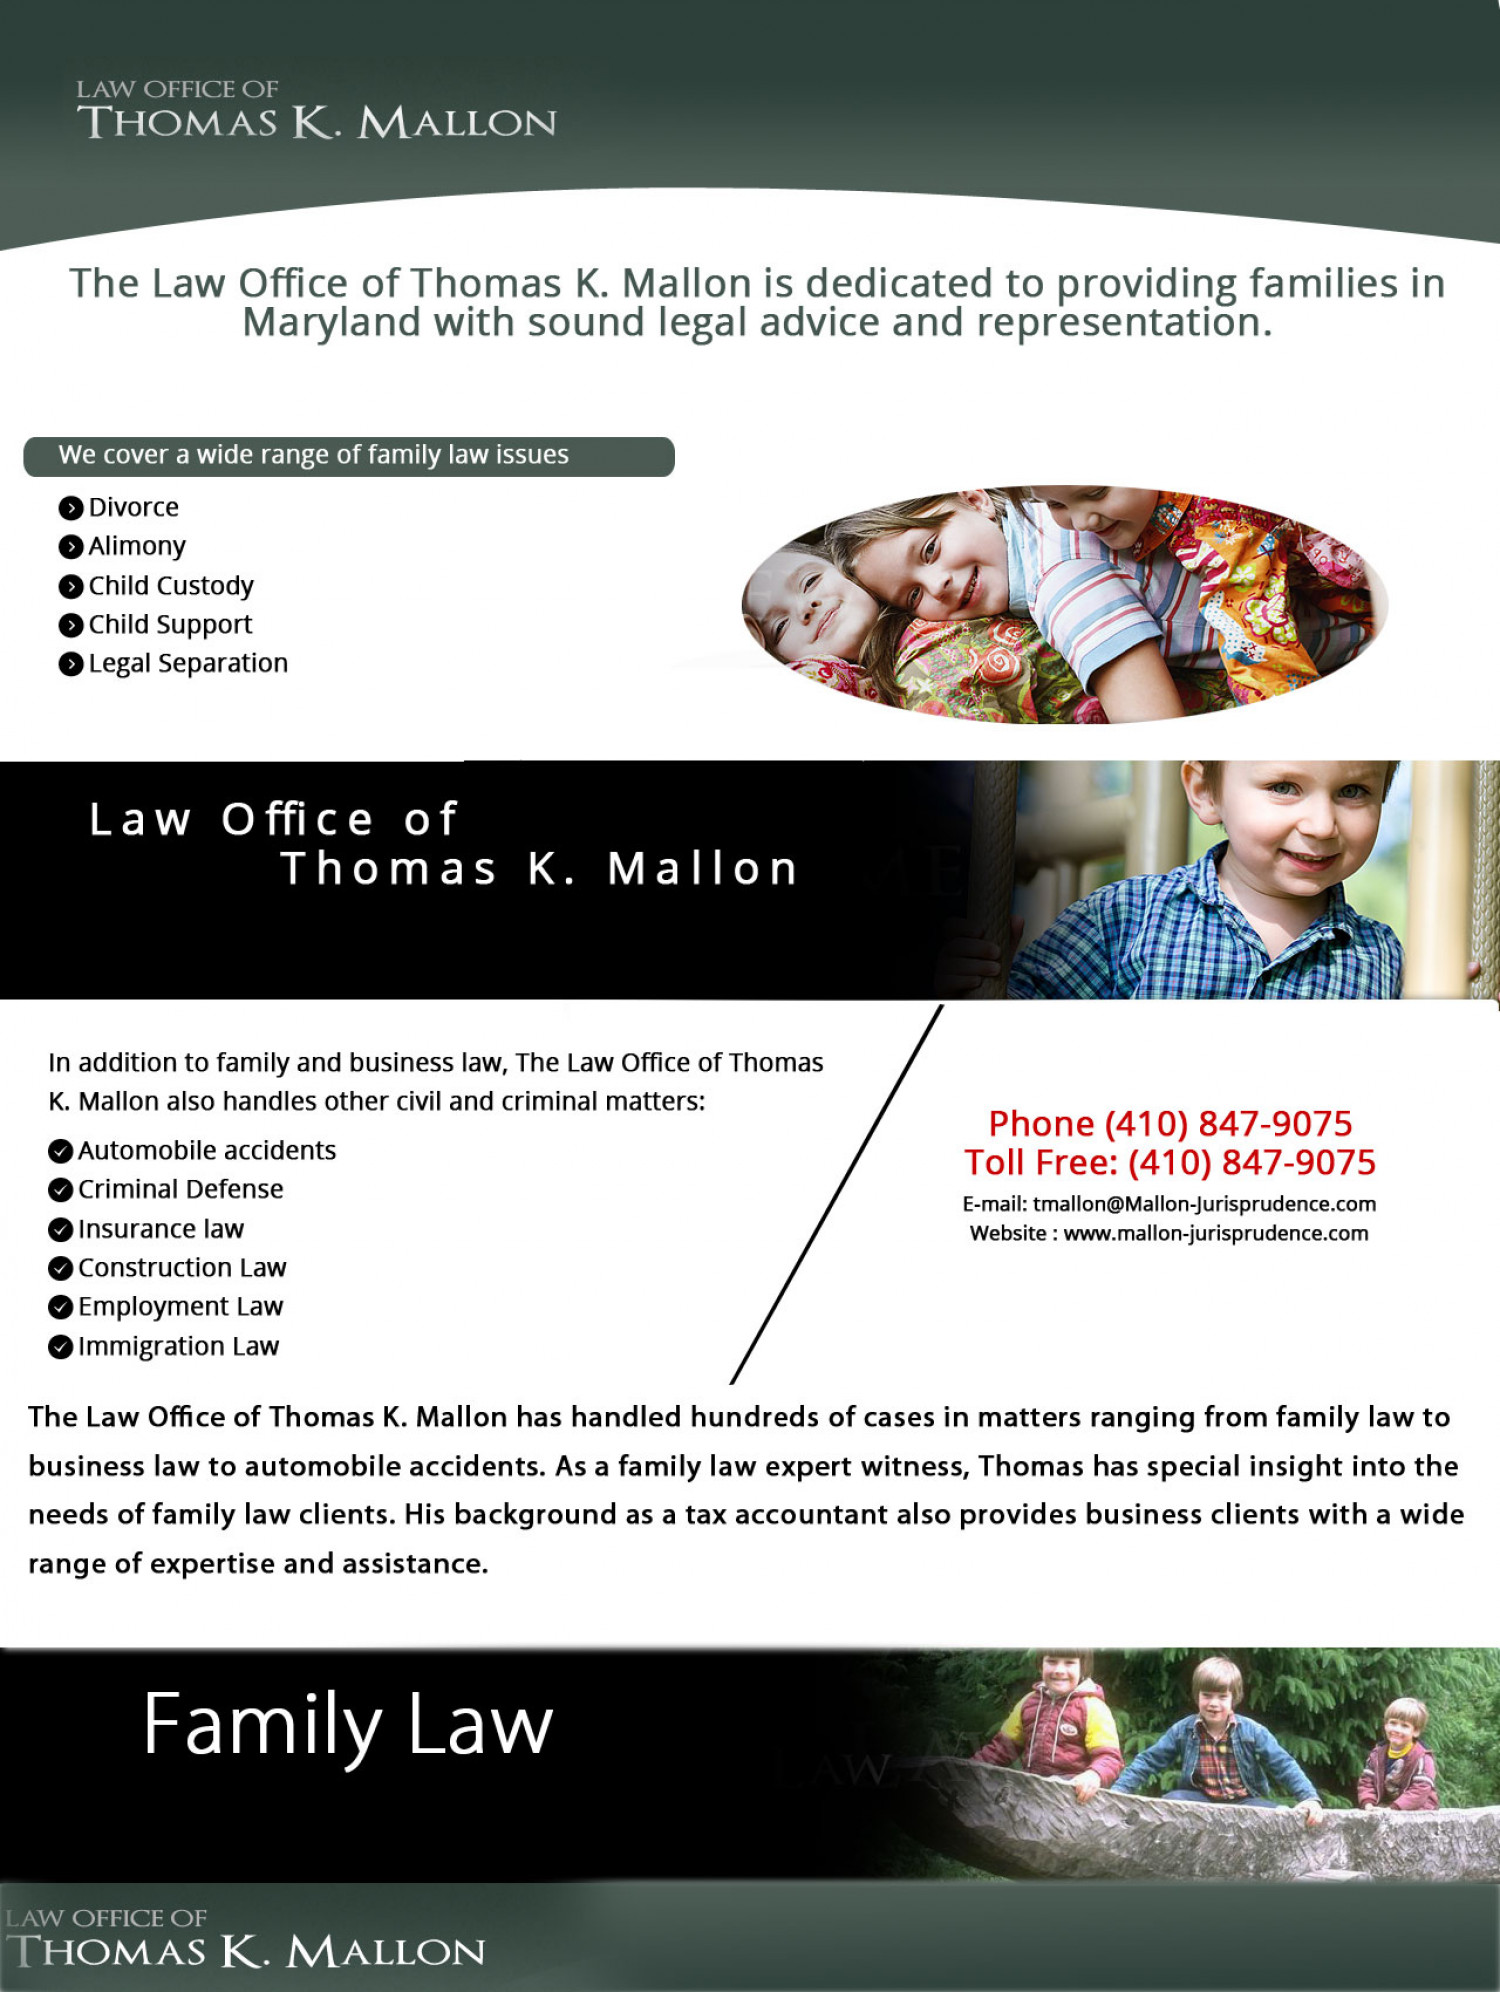 Law Office of Thomas K. Mallon Infographic